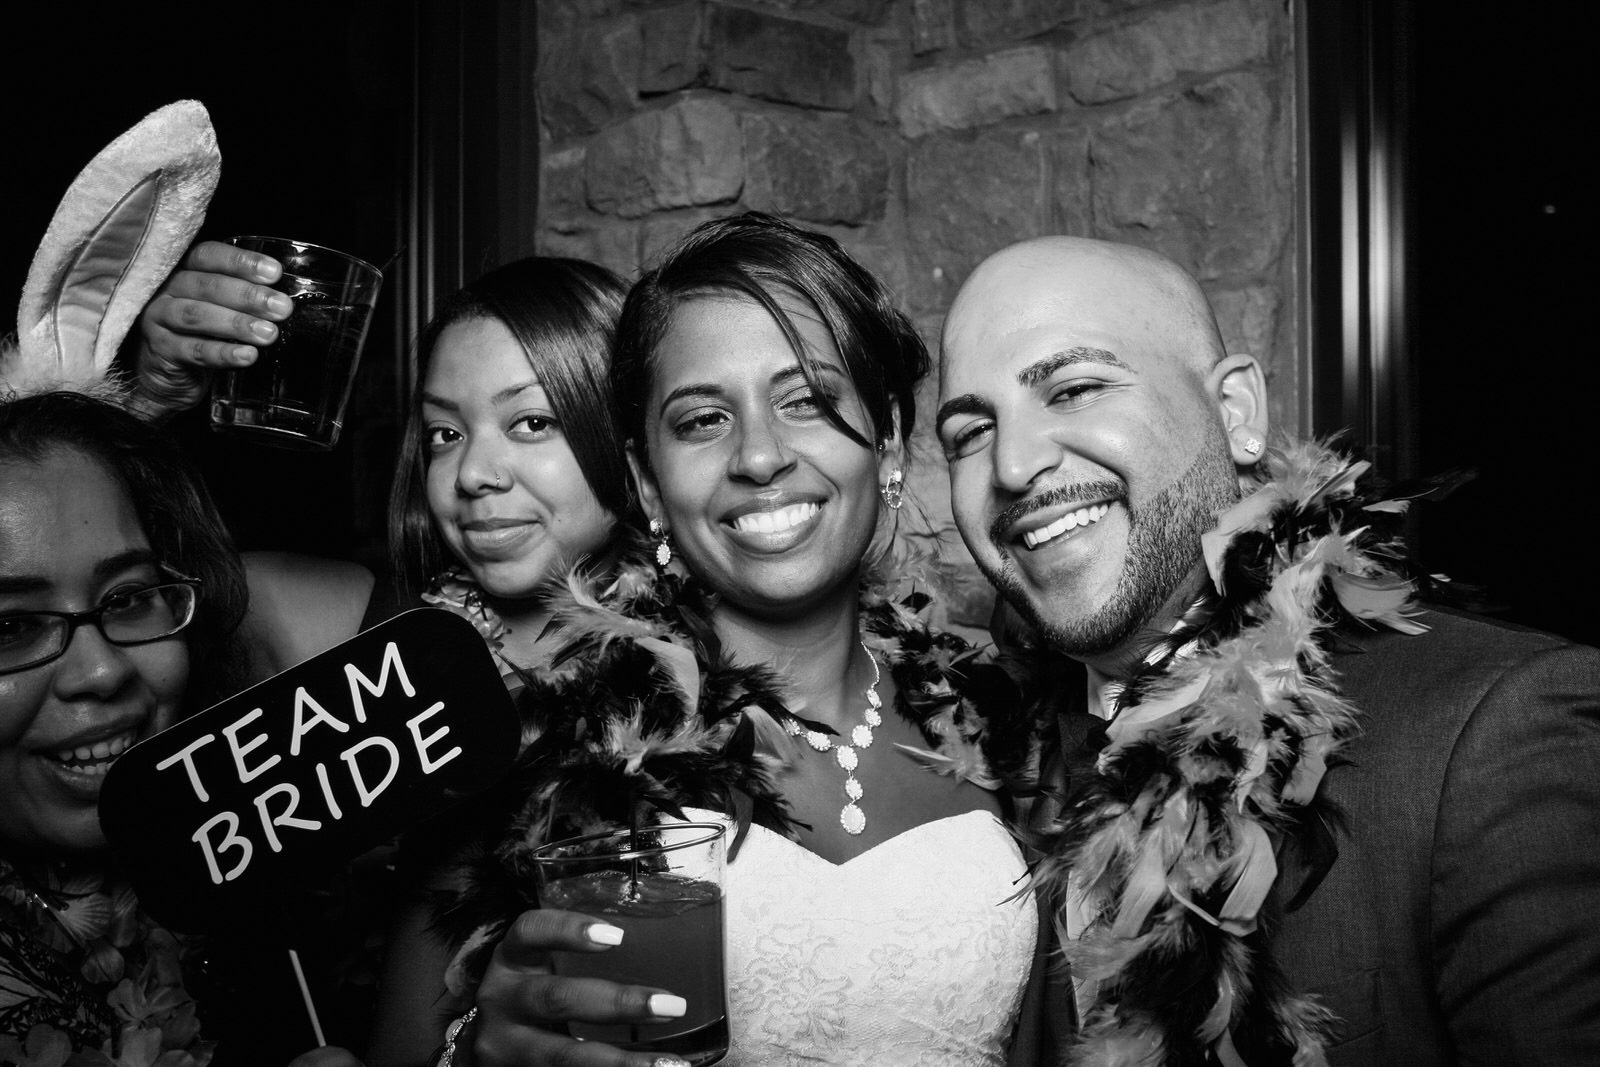 Vanessa-Jonathan-Wedding-Photo-Booth-106.jpg